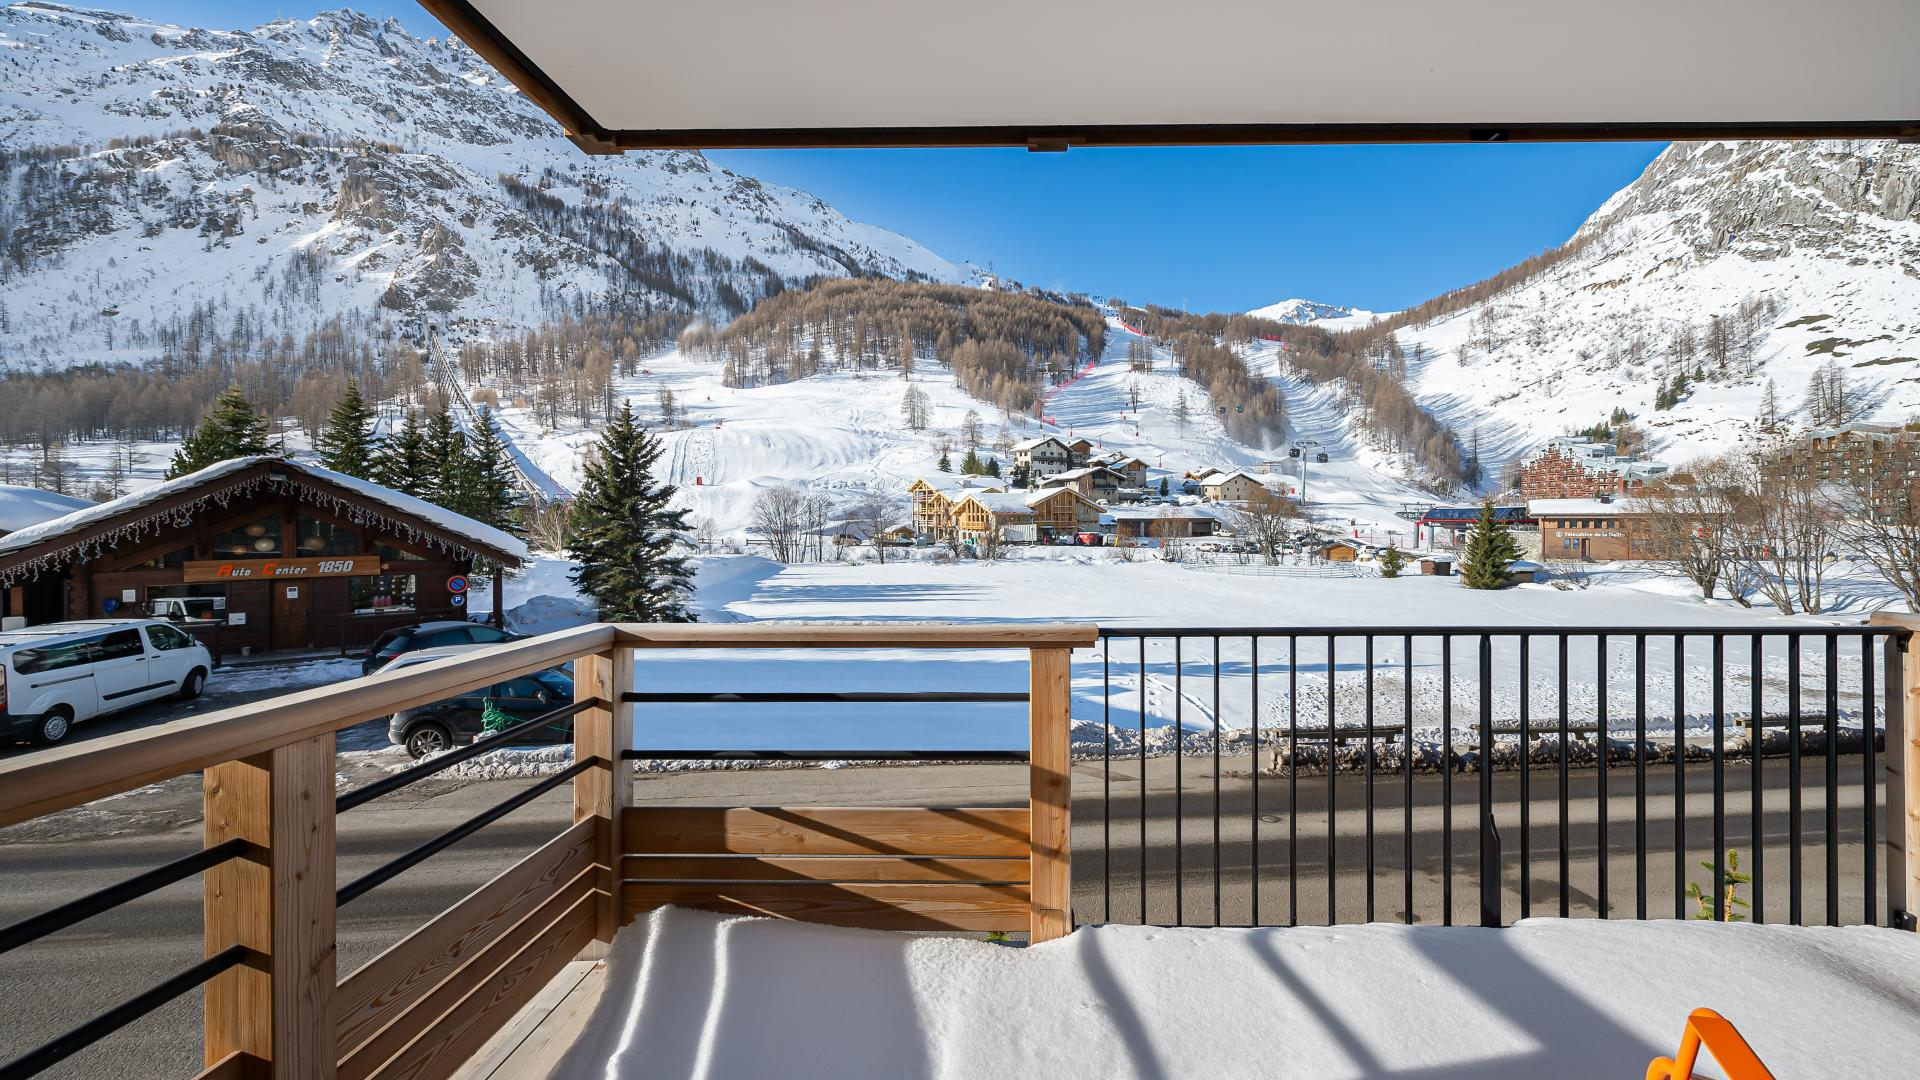 Appartement Sifflote 9 - Location chalets Covarel - Val d'Isère Alpes - France - Terrasse